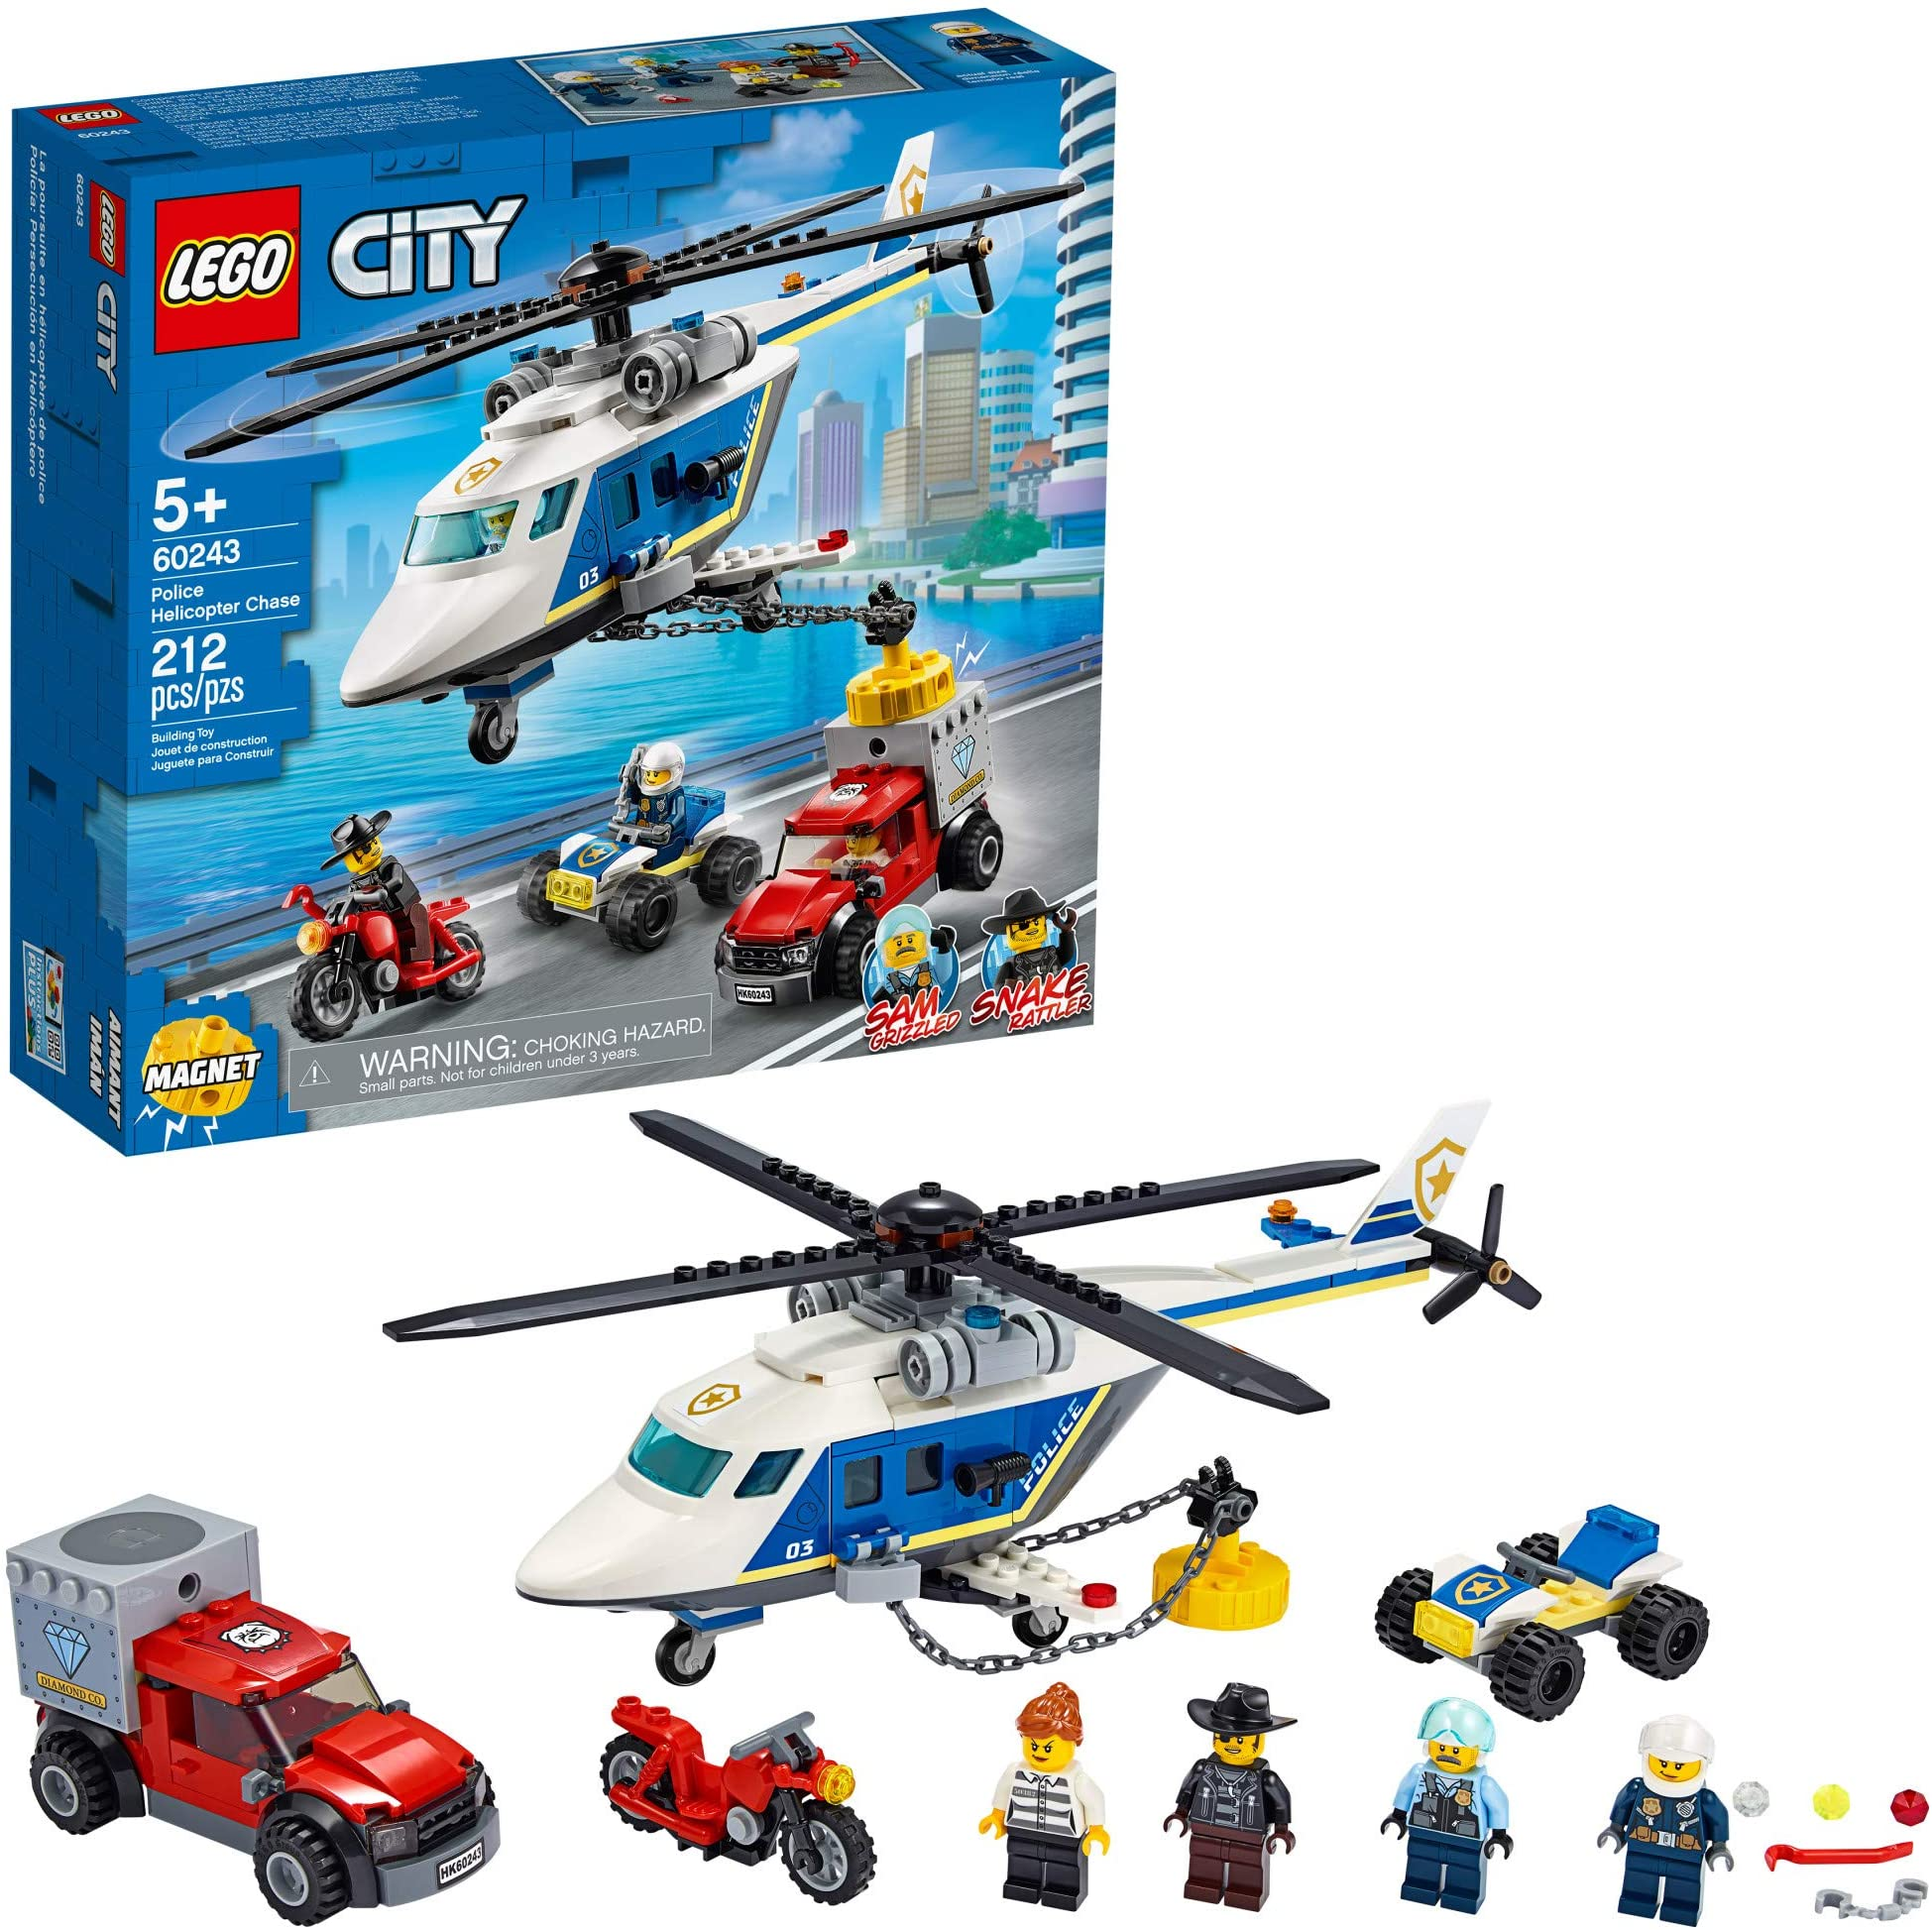 Officer Female Pilot With Helmet NEUF NEW LEGO City Minifigure CTY832 Police